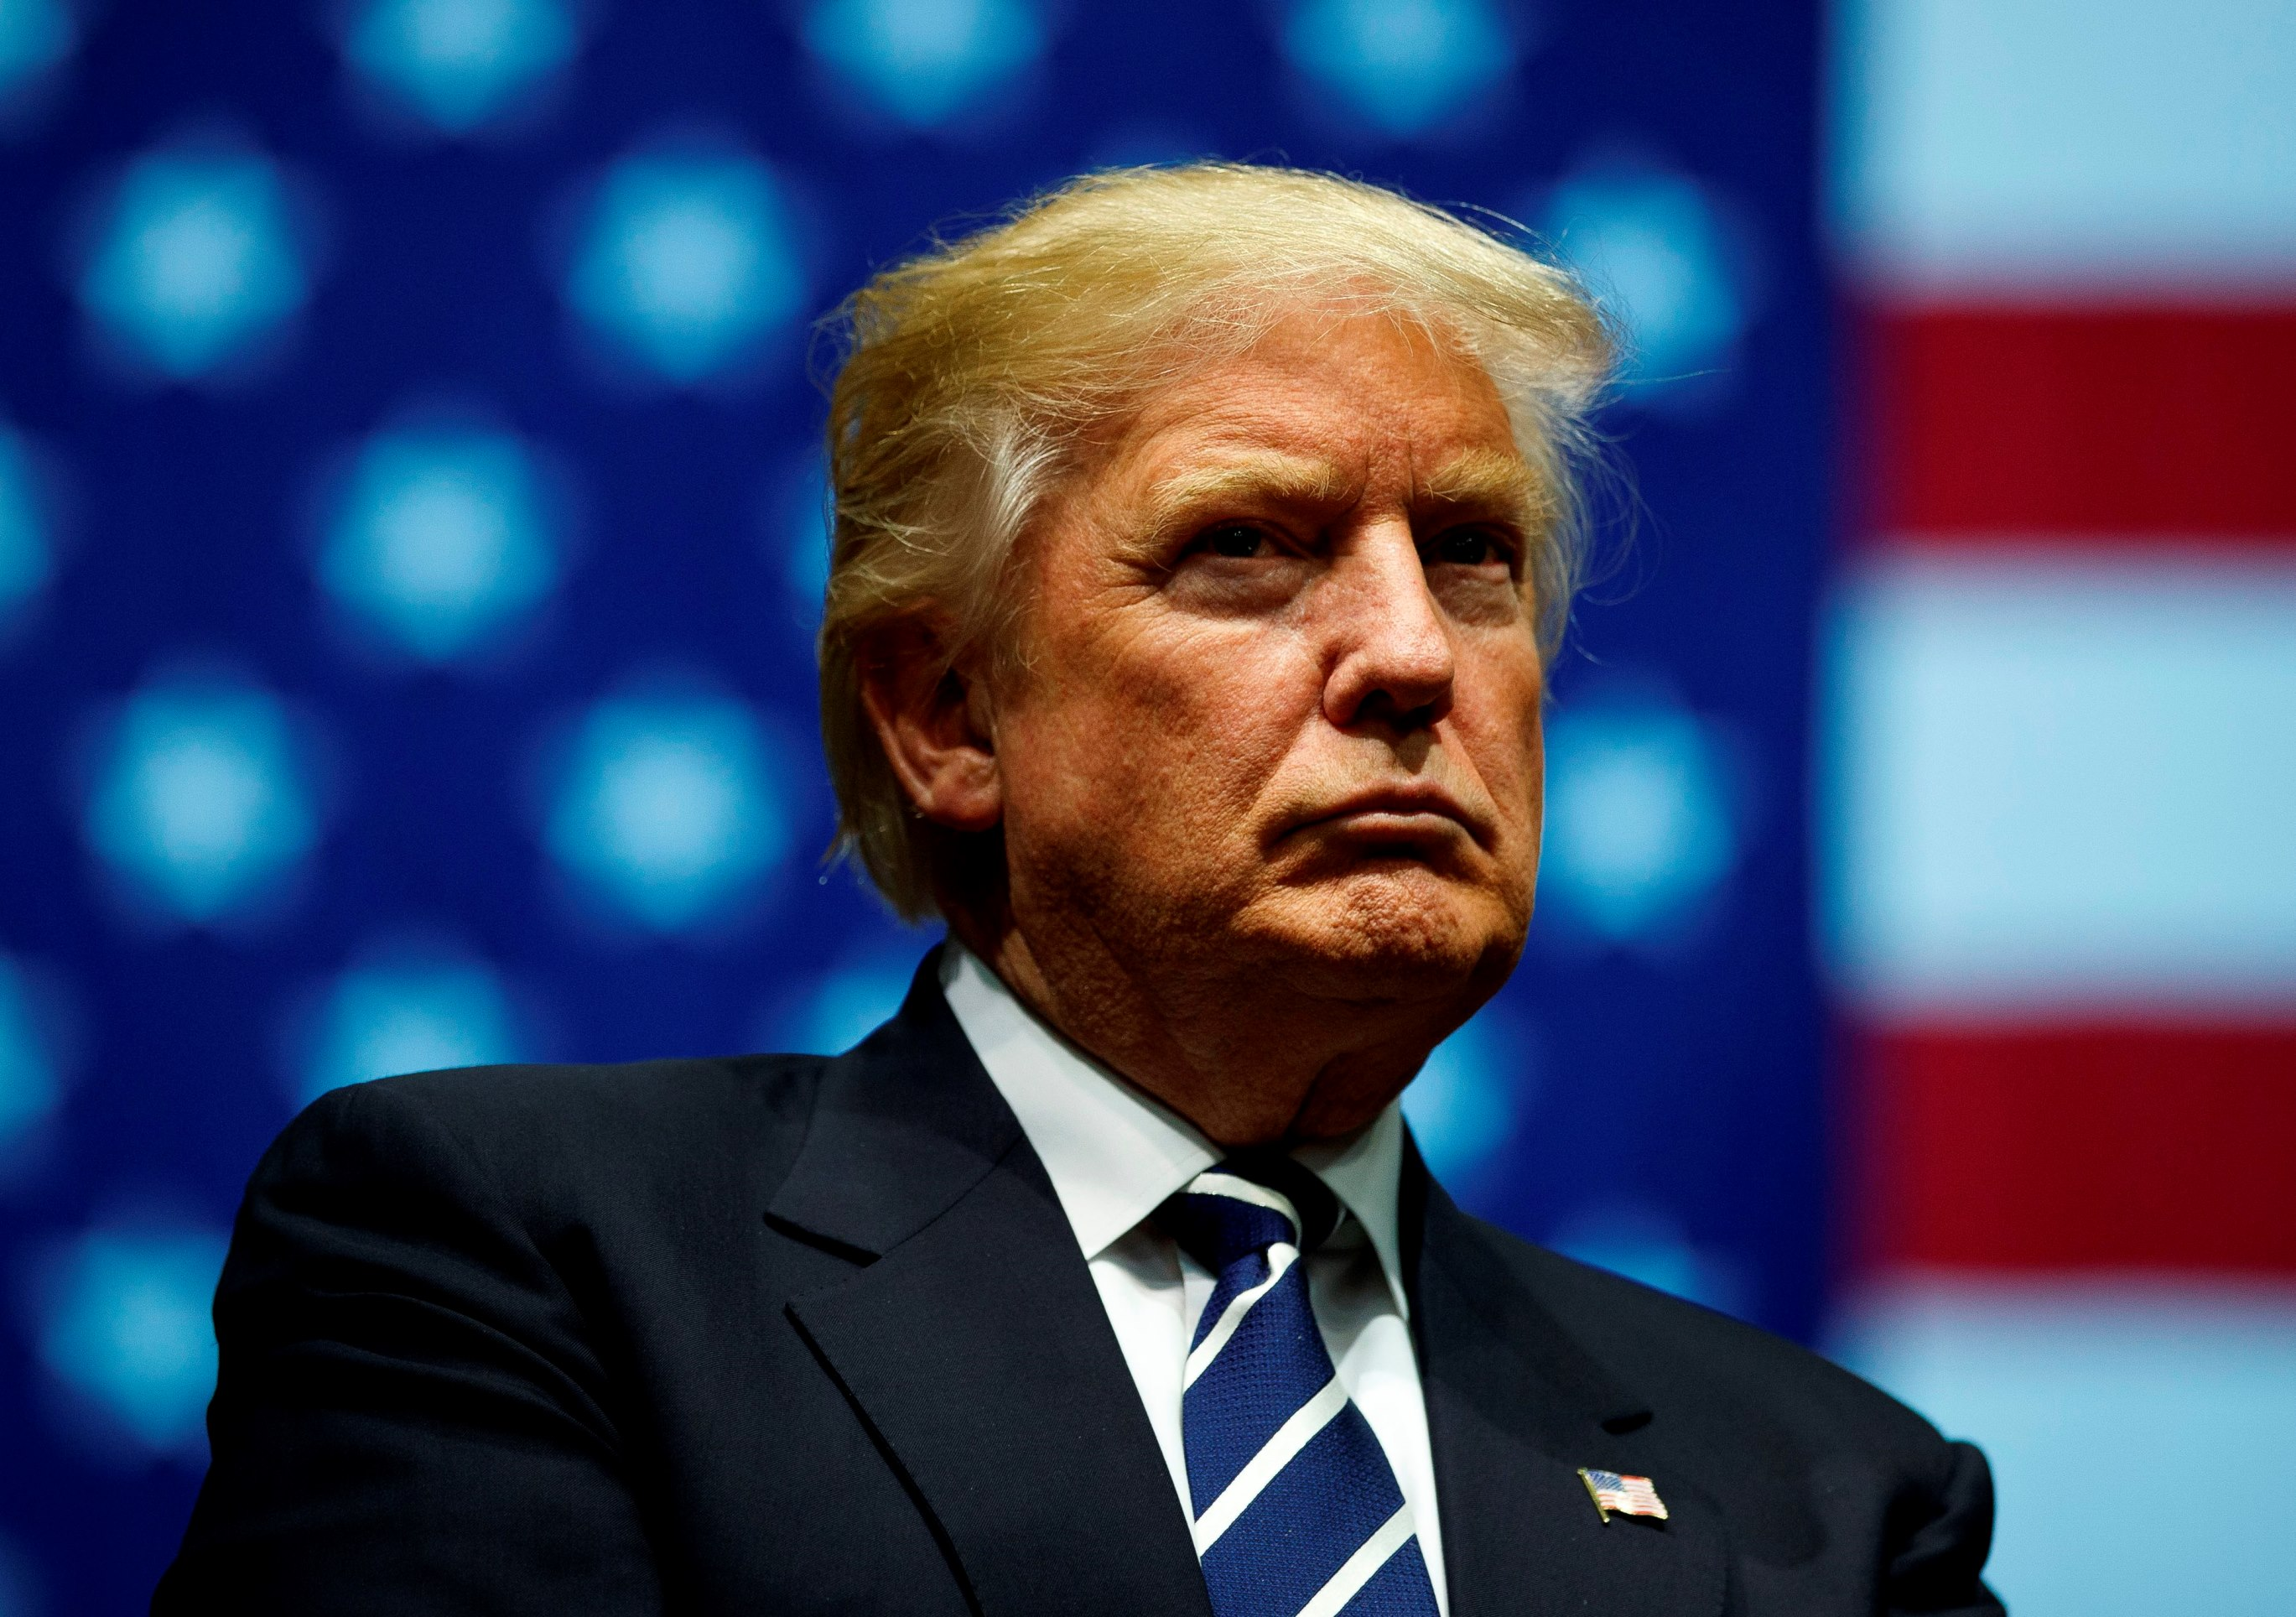 President Trump shared videos supposedly portraying Muslims committing acts of violence on Twitter on Wednesday morning, images that are likely to fuel anti-Islam sentiments popular among the president's political base in the United States. (Getty Images)